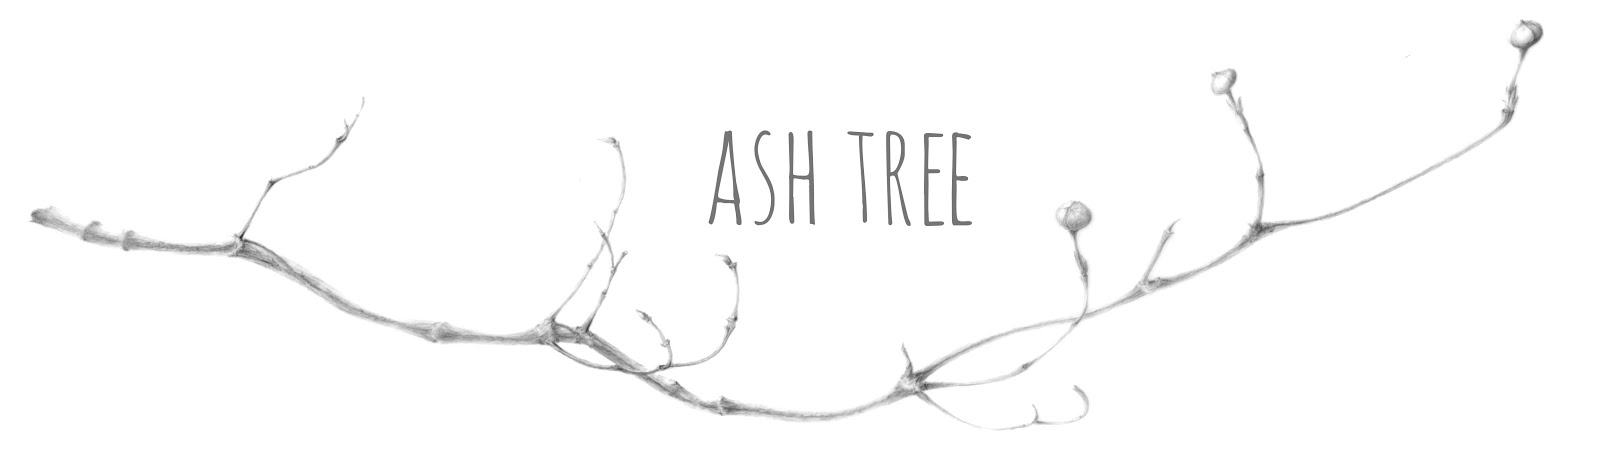 ash tree: vintage & lifestyle blog